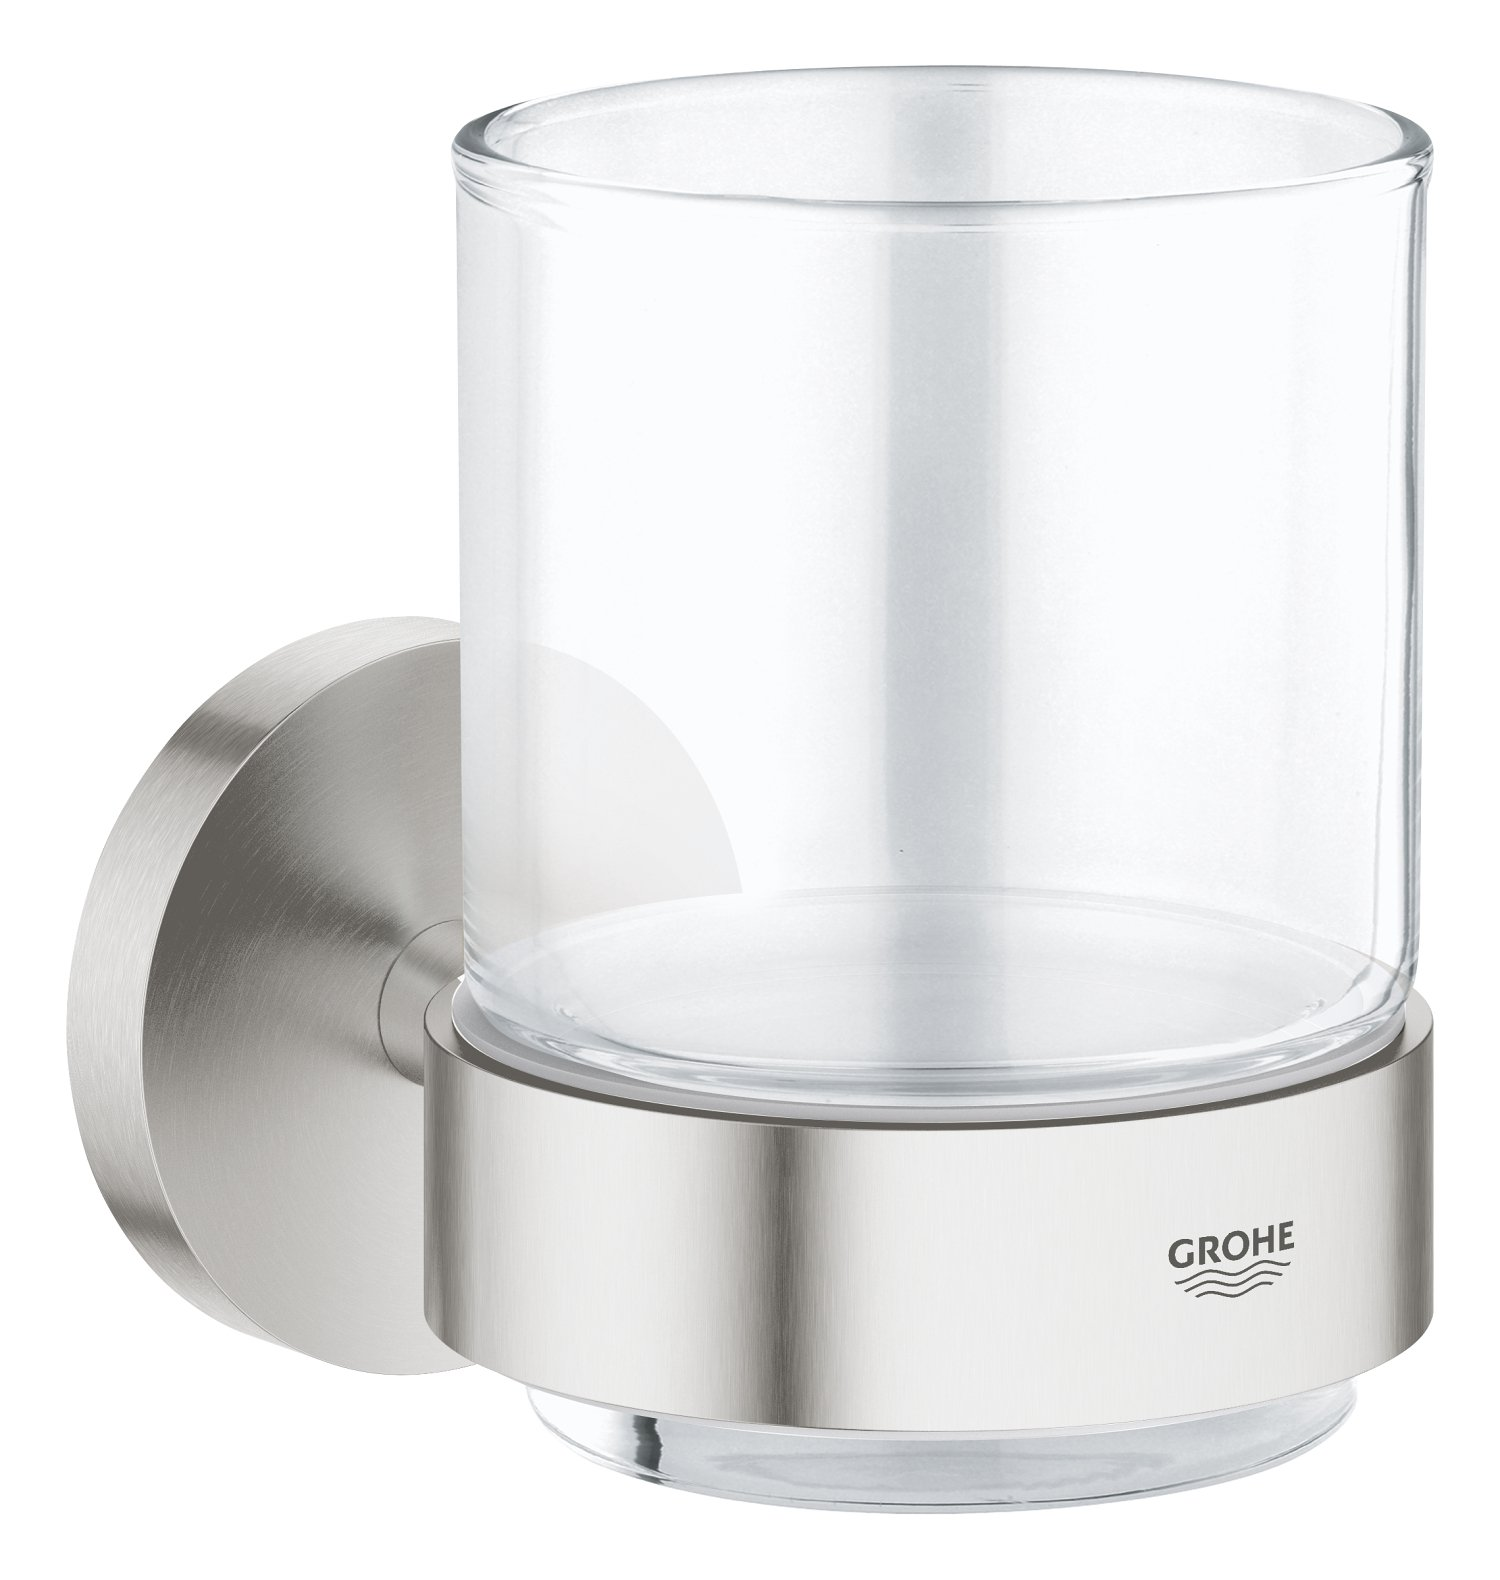 GROHE 40447DC1 Super Steel Essentials Glass with Holder, Silver